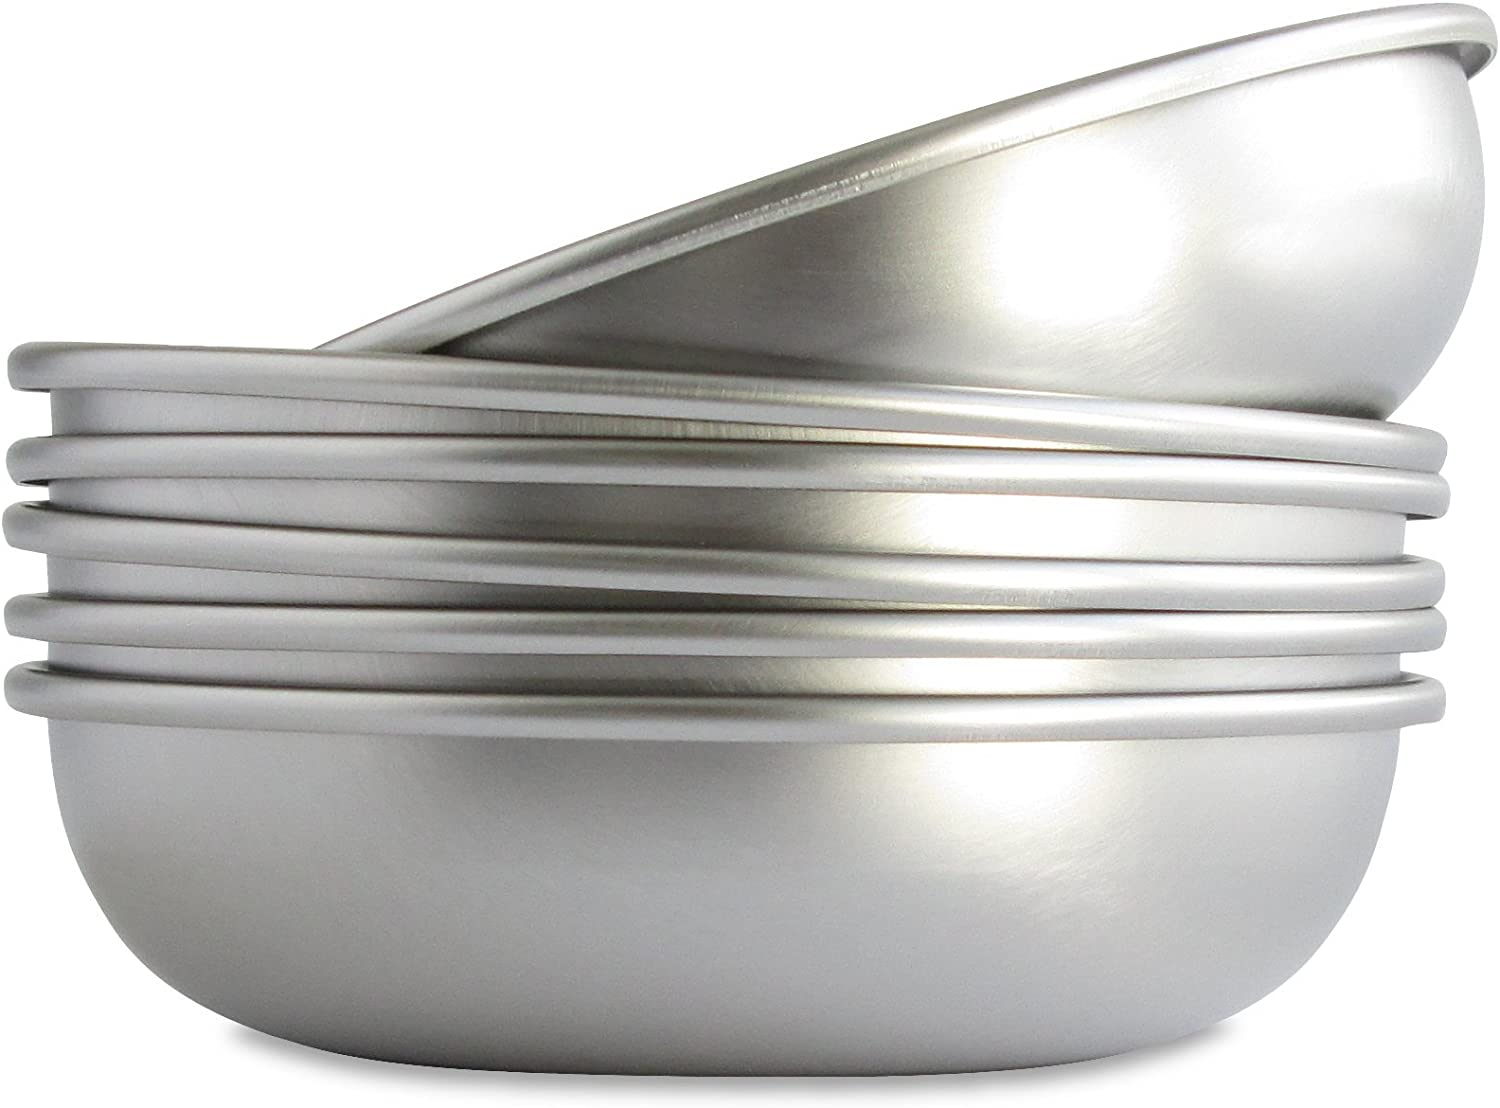 Basis Pet Made in the USA Low Profile Stainless Steel Cat Dish